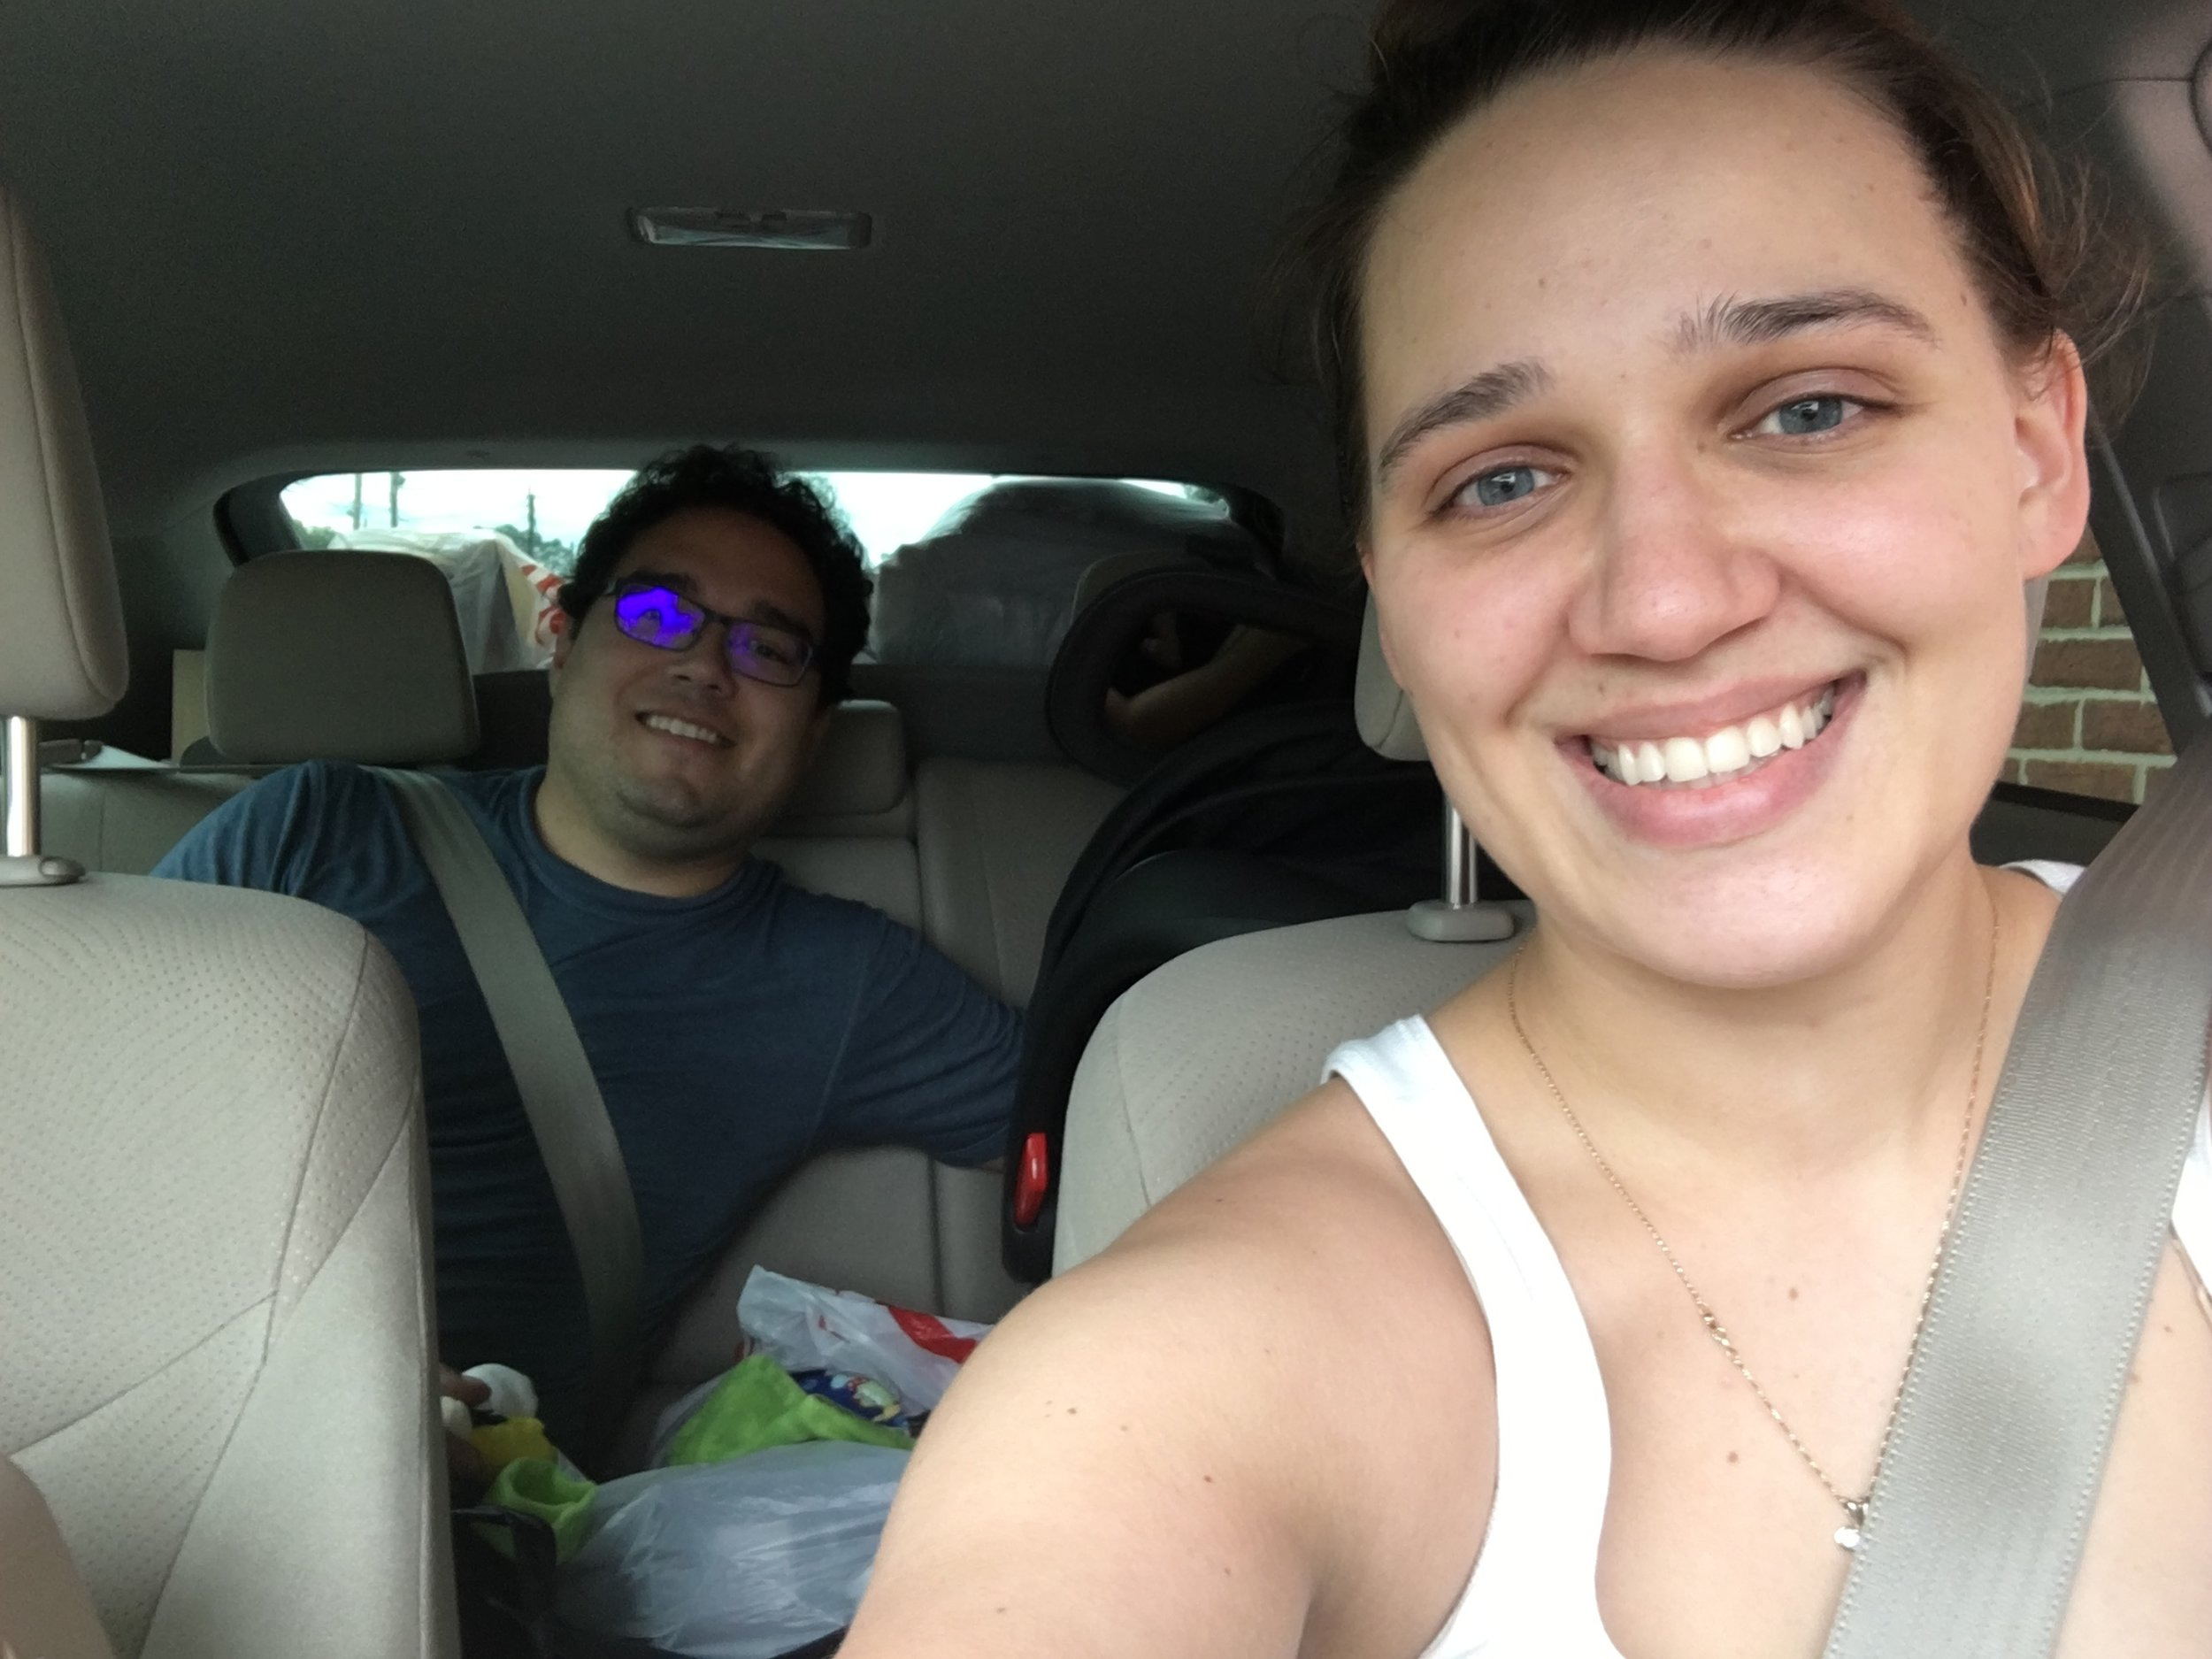 In the car as we left the American South for good in August 2017.